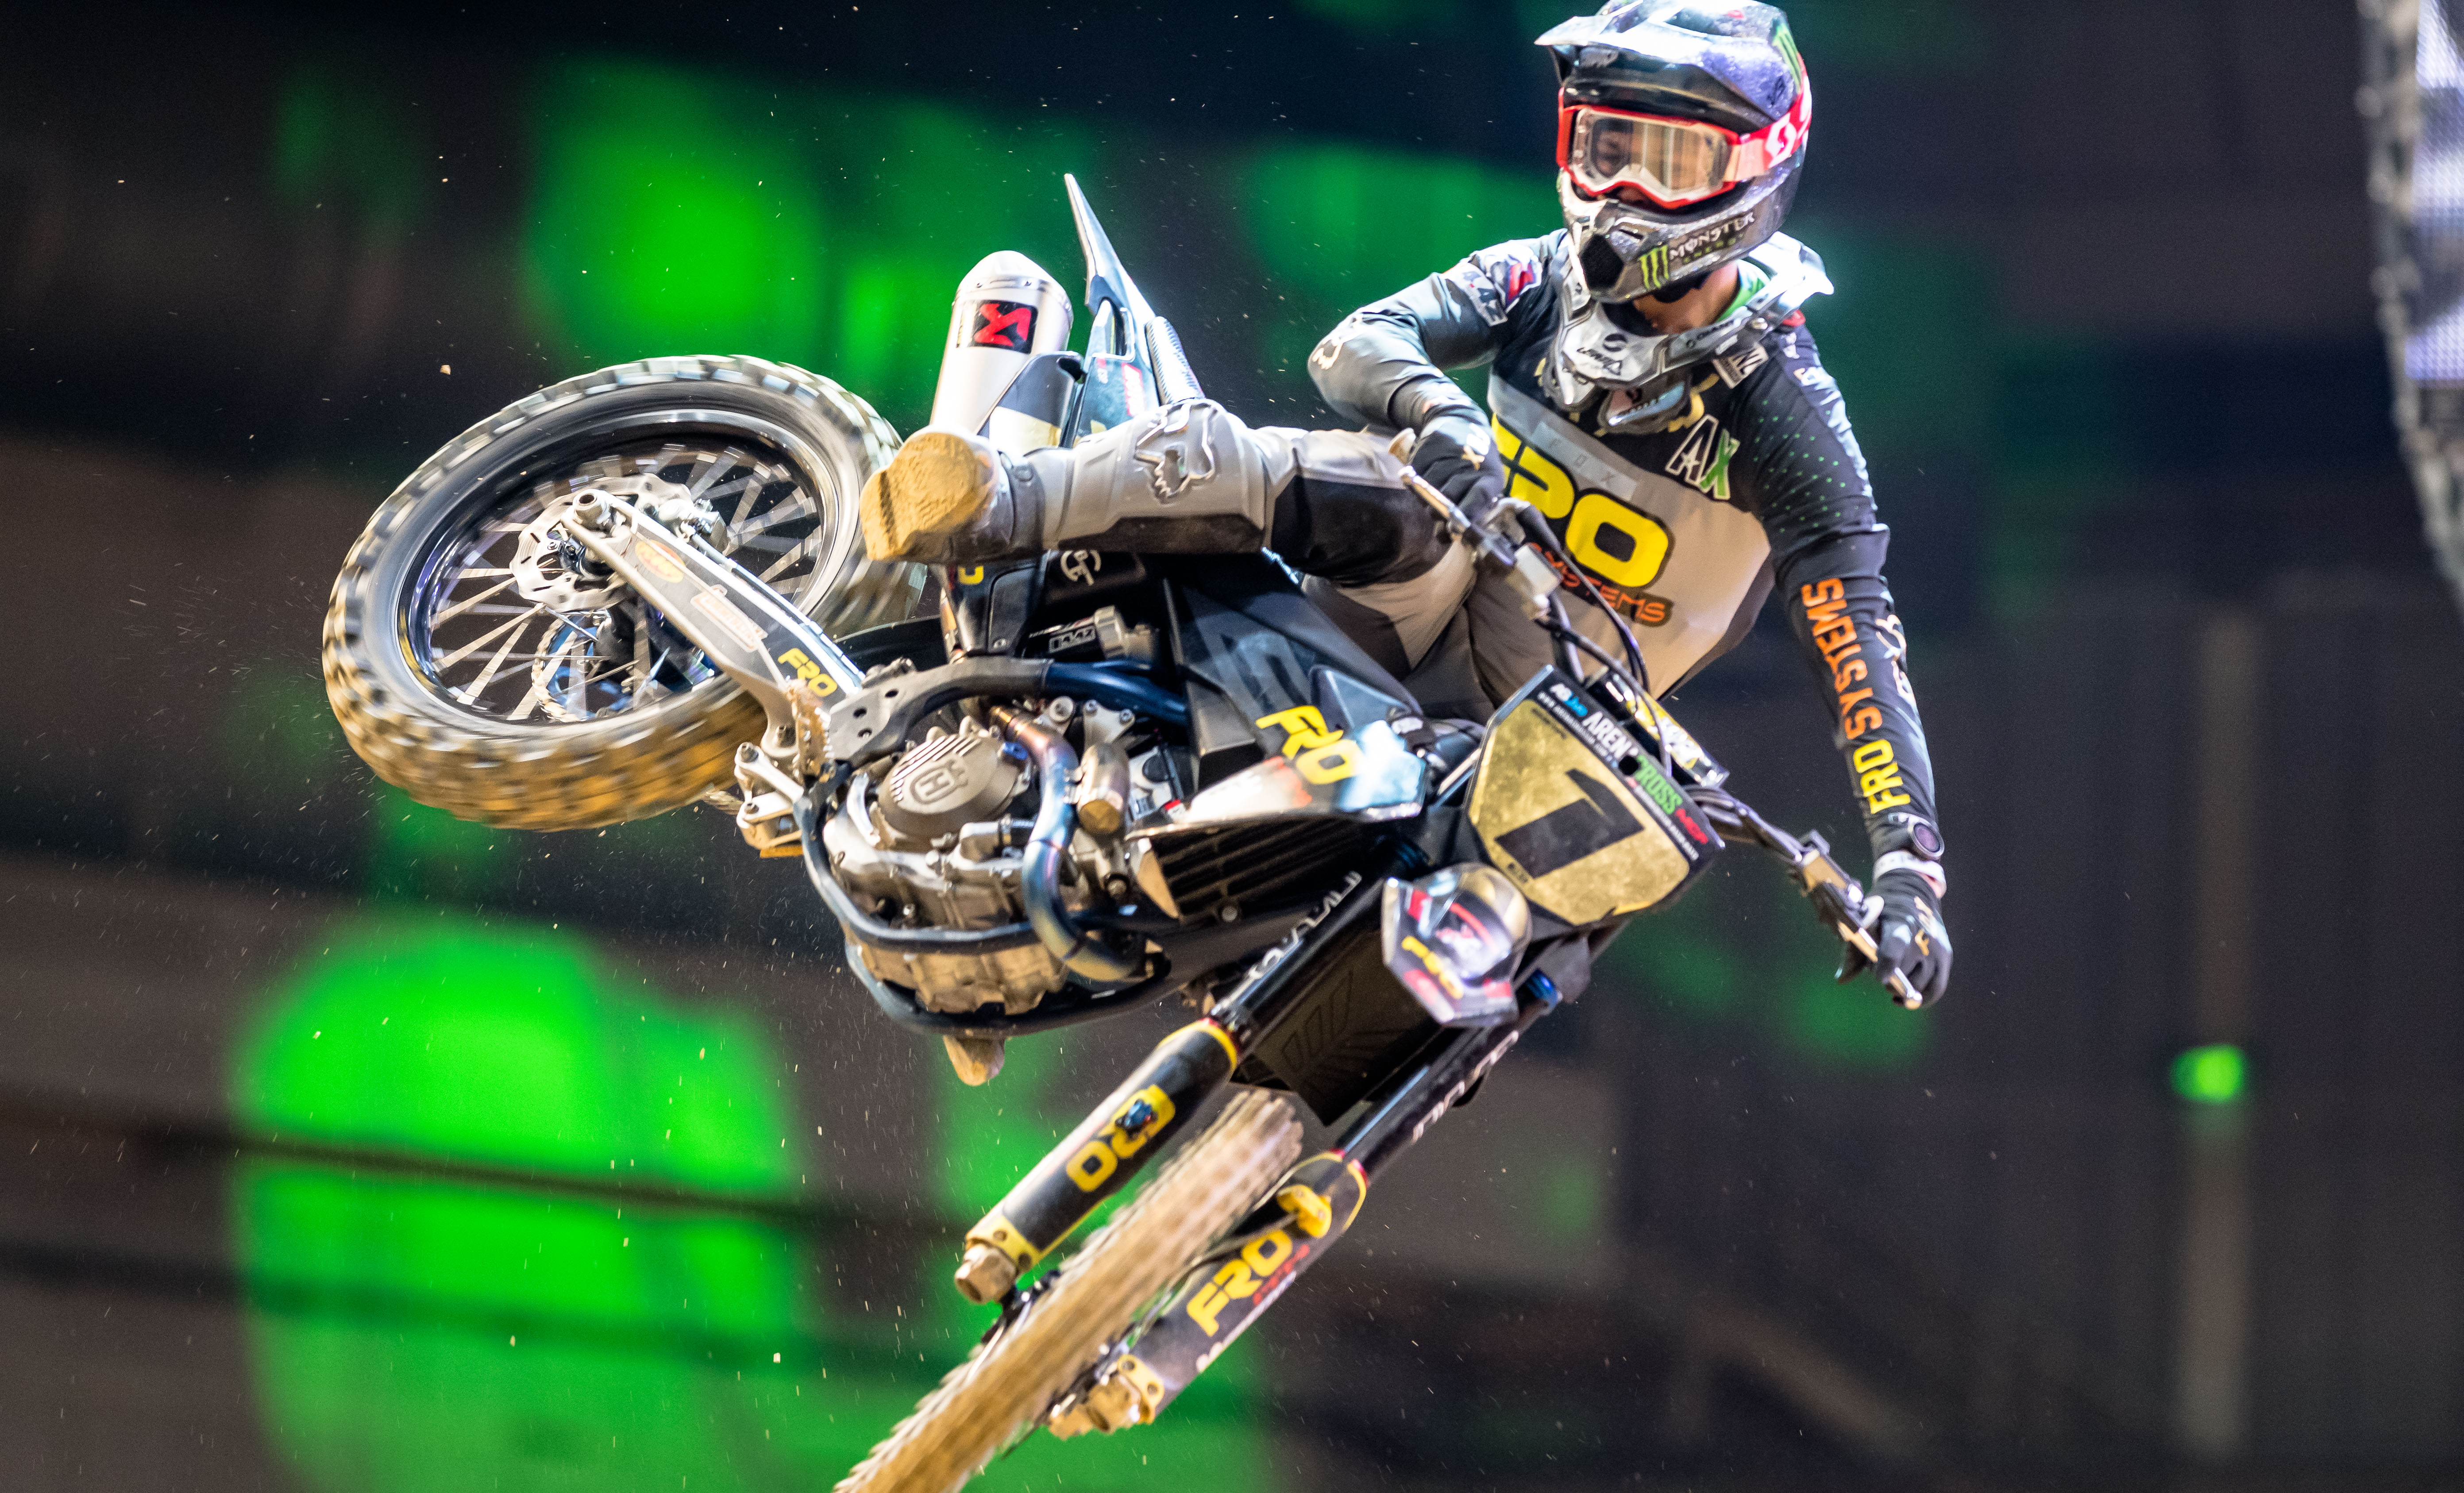 ASA United Husqvarna take on Arenacross with 2019 Champion